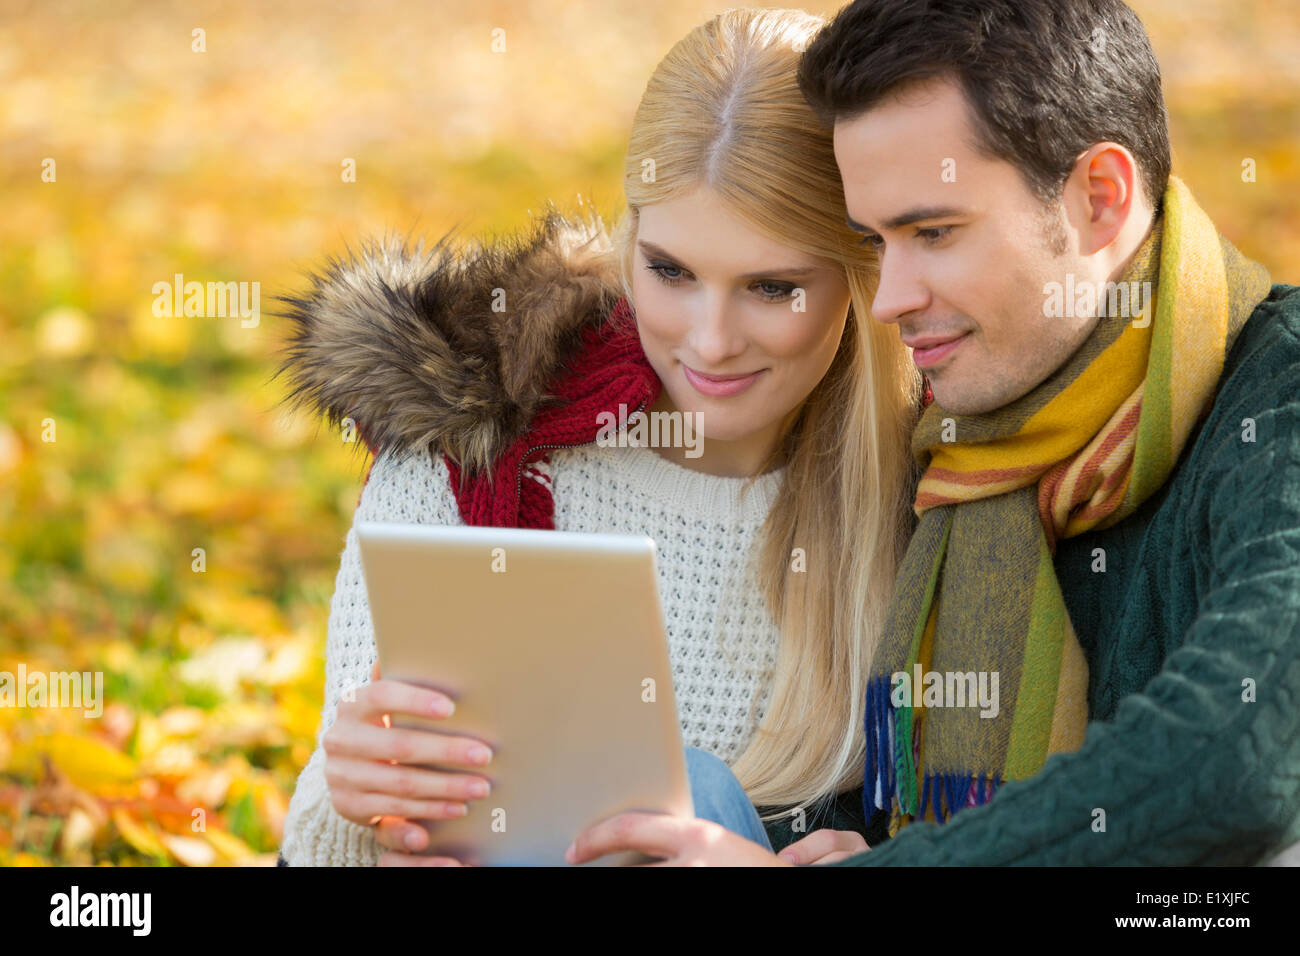 Couple using digital tablet in park during autumn - Stock Image